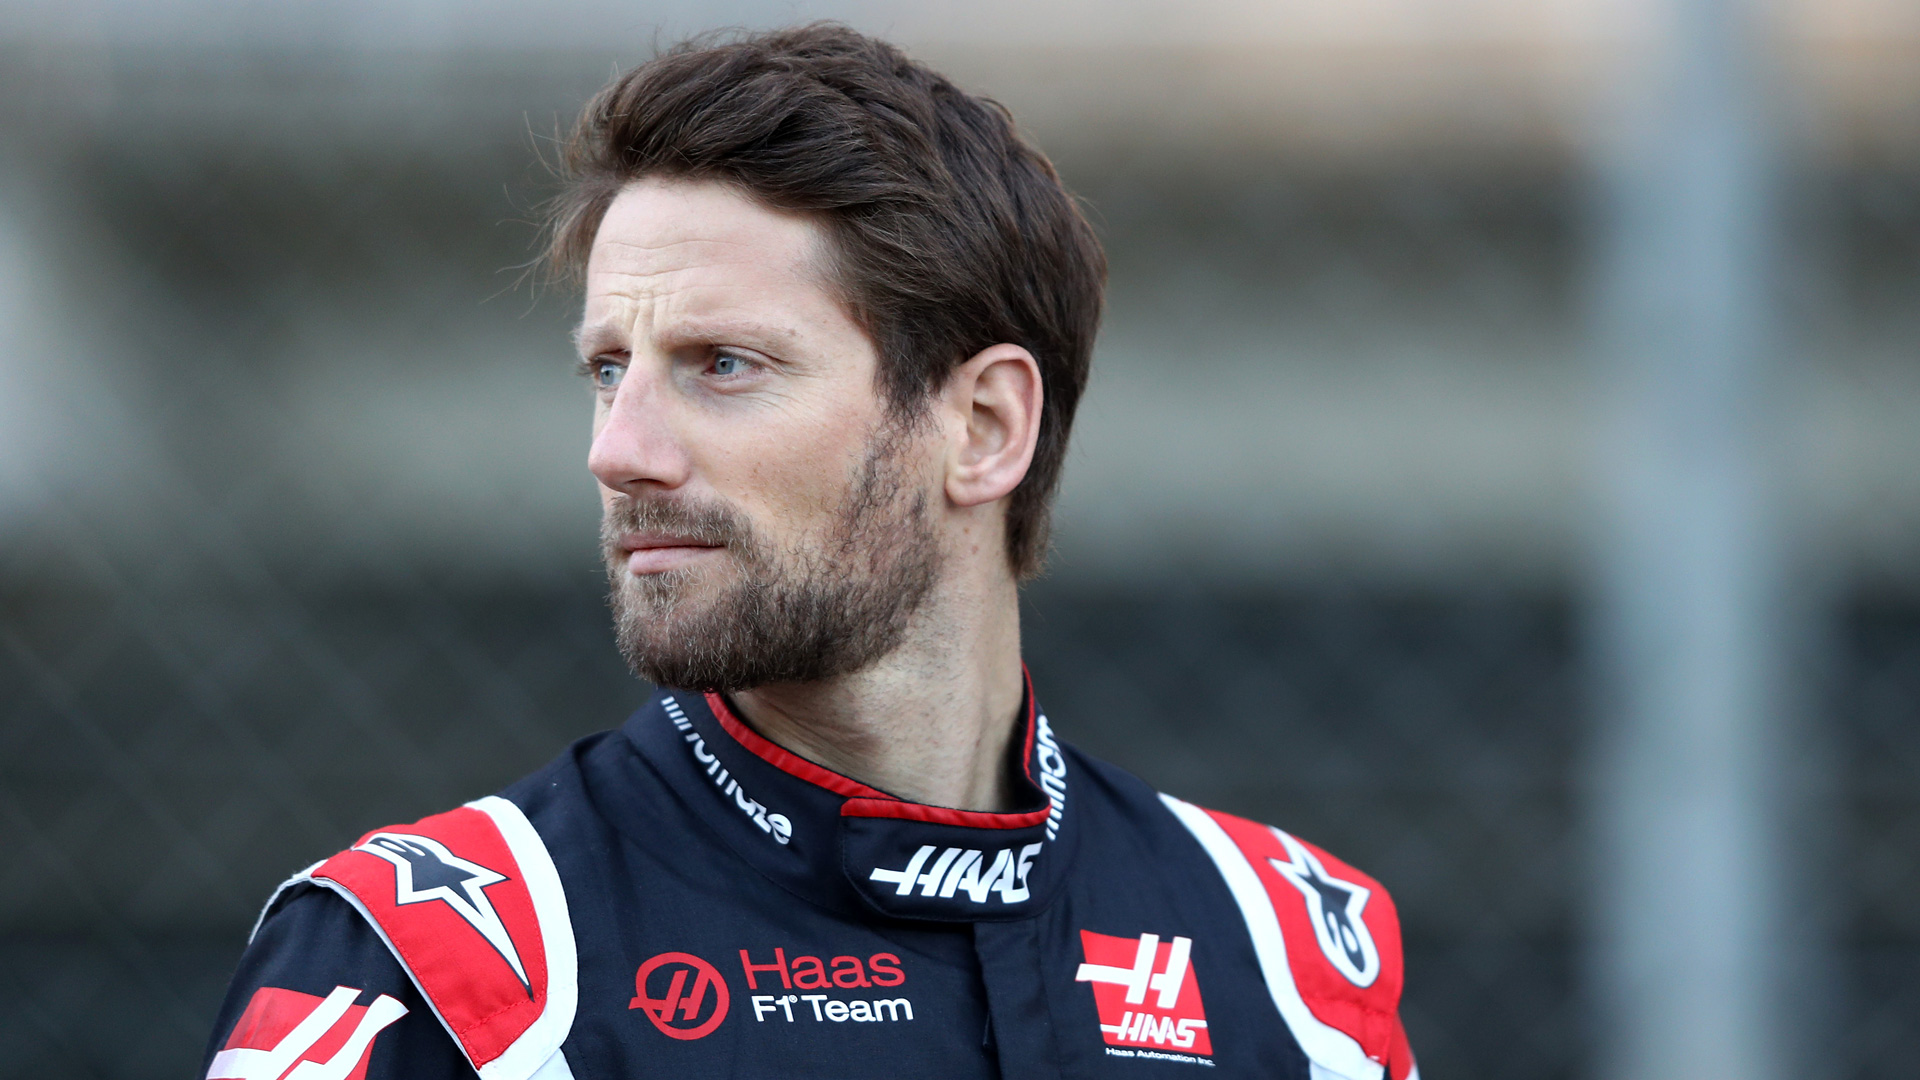 Romain Grosjean wants F1 to conduct better assessment on how accidents impact the brain - THE SPORTS ROOM